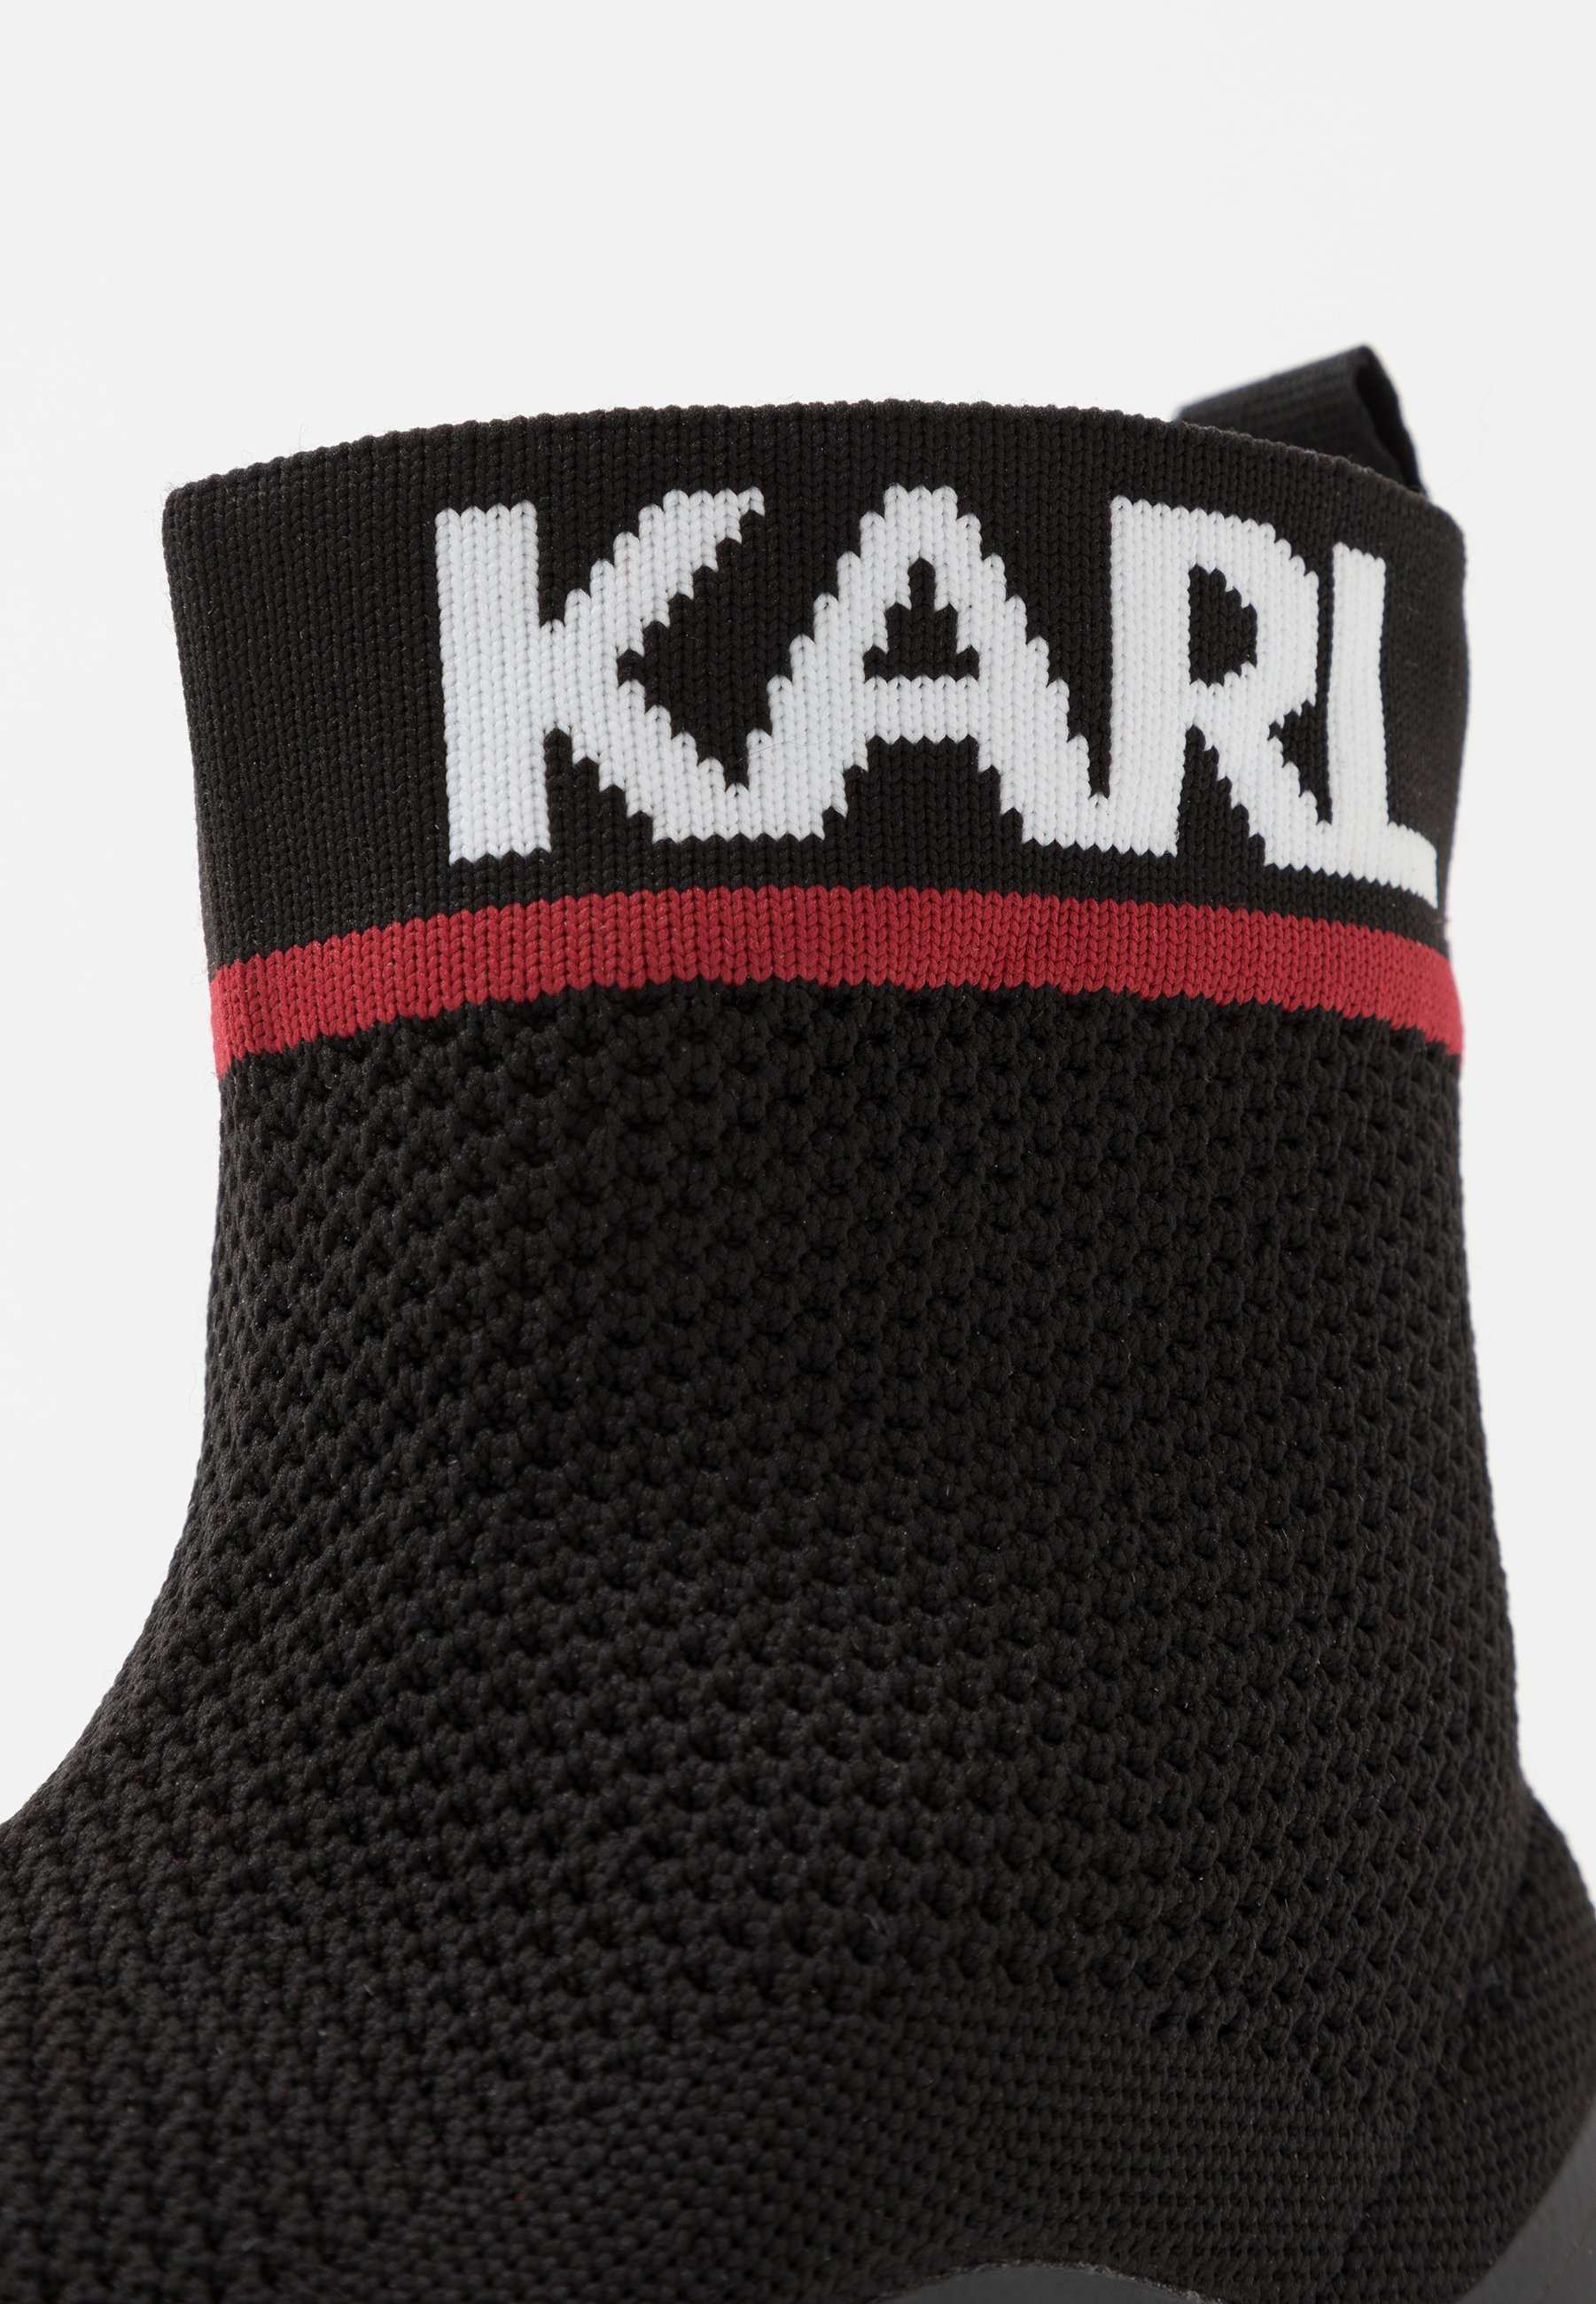 Karl Lagerfeld Verge Pull On Runner - Sneakers High Black